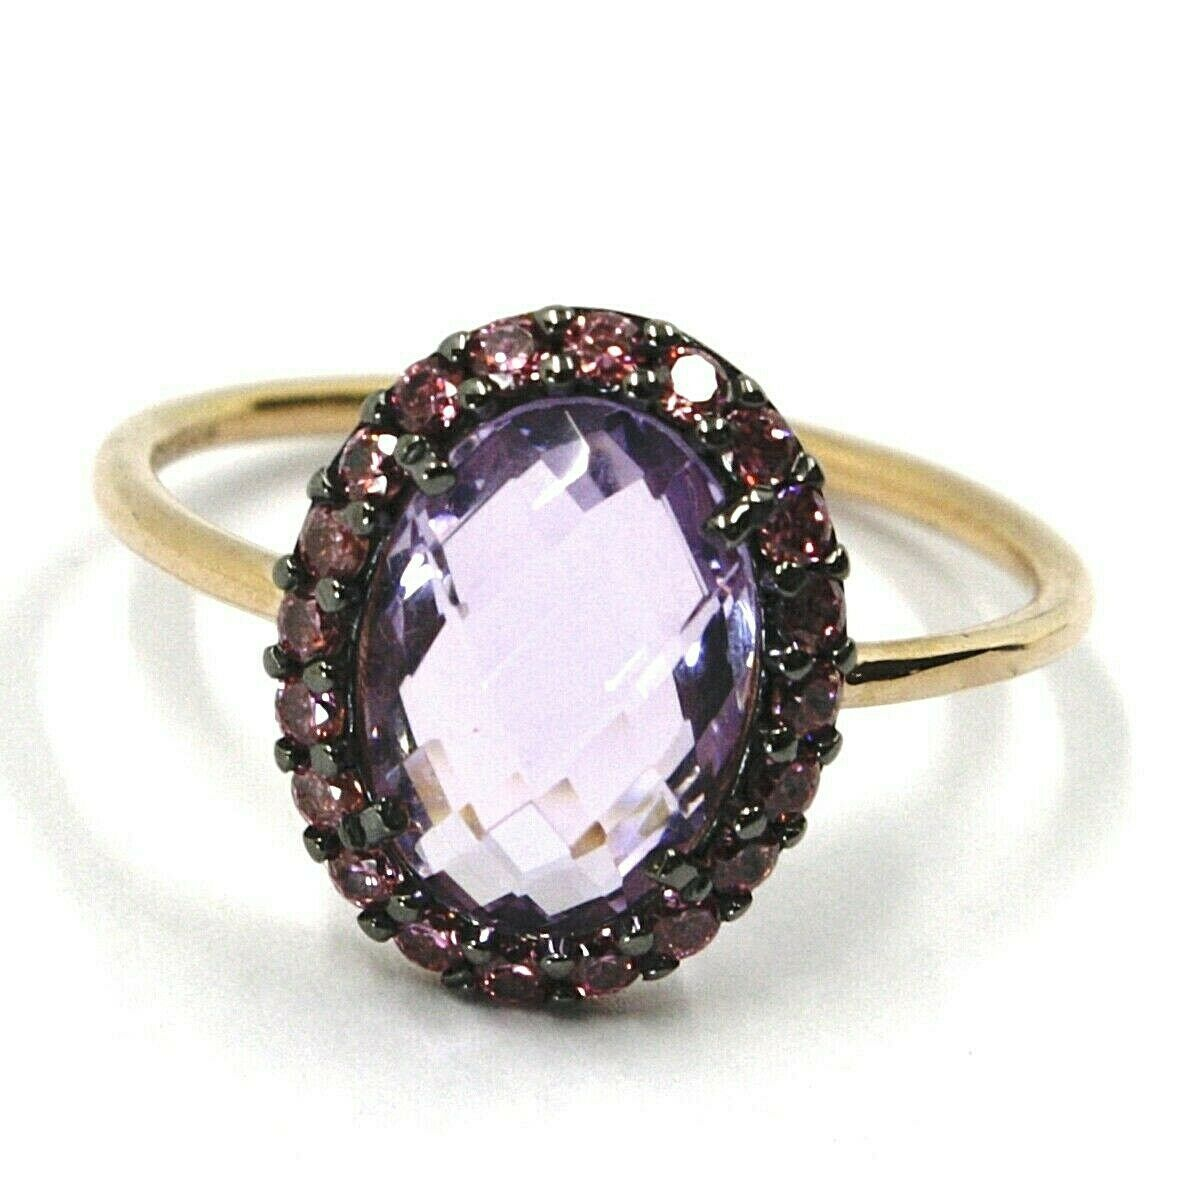 18K ROSE GOLD FLOWER RING PURPLE CUSHION OVAL CRYSTAL, CUBIC ZIRCONIA FRAME